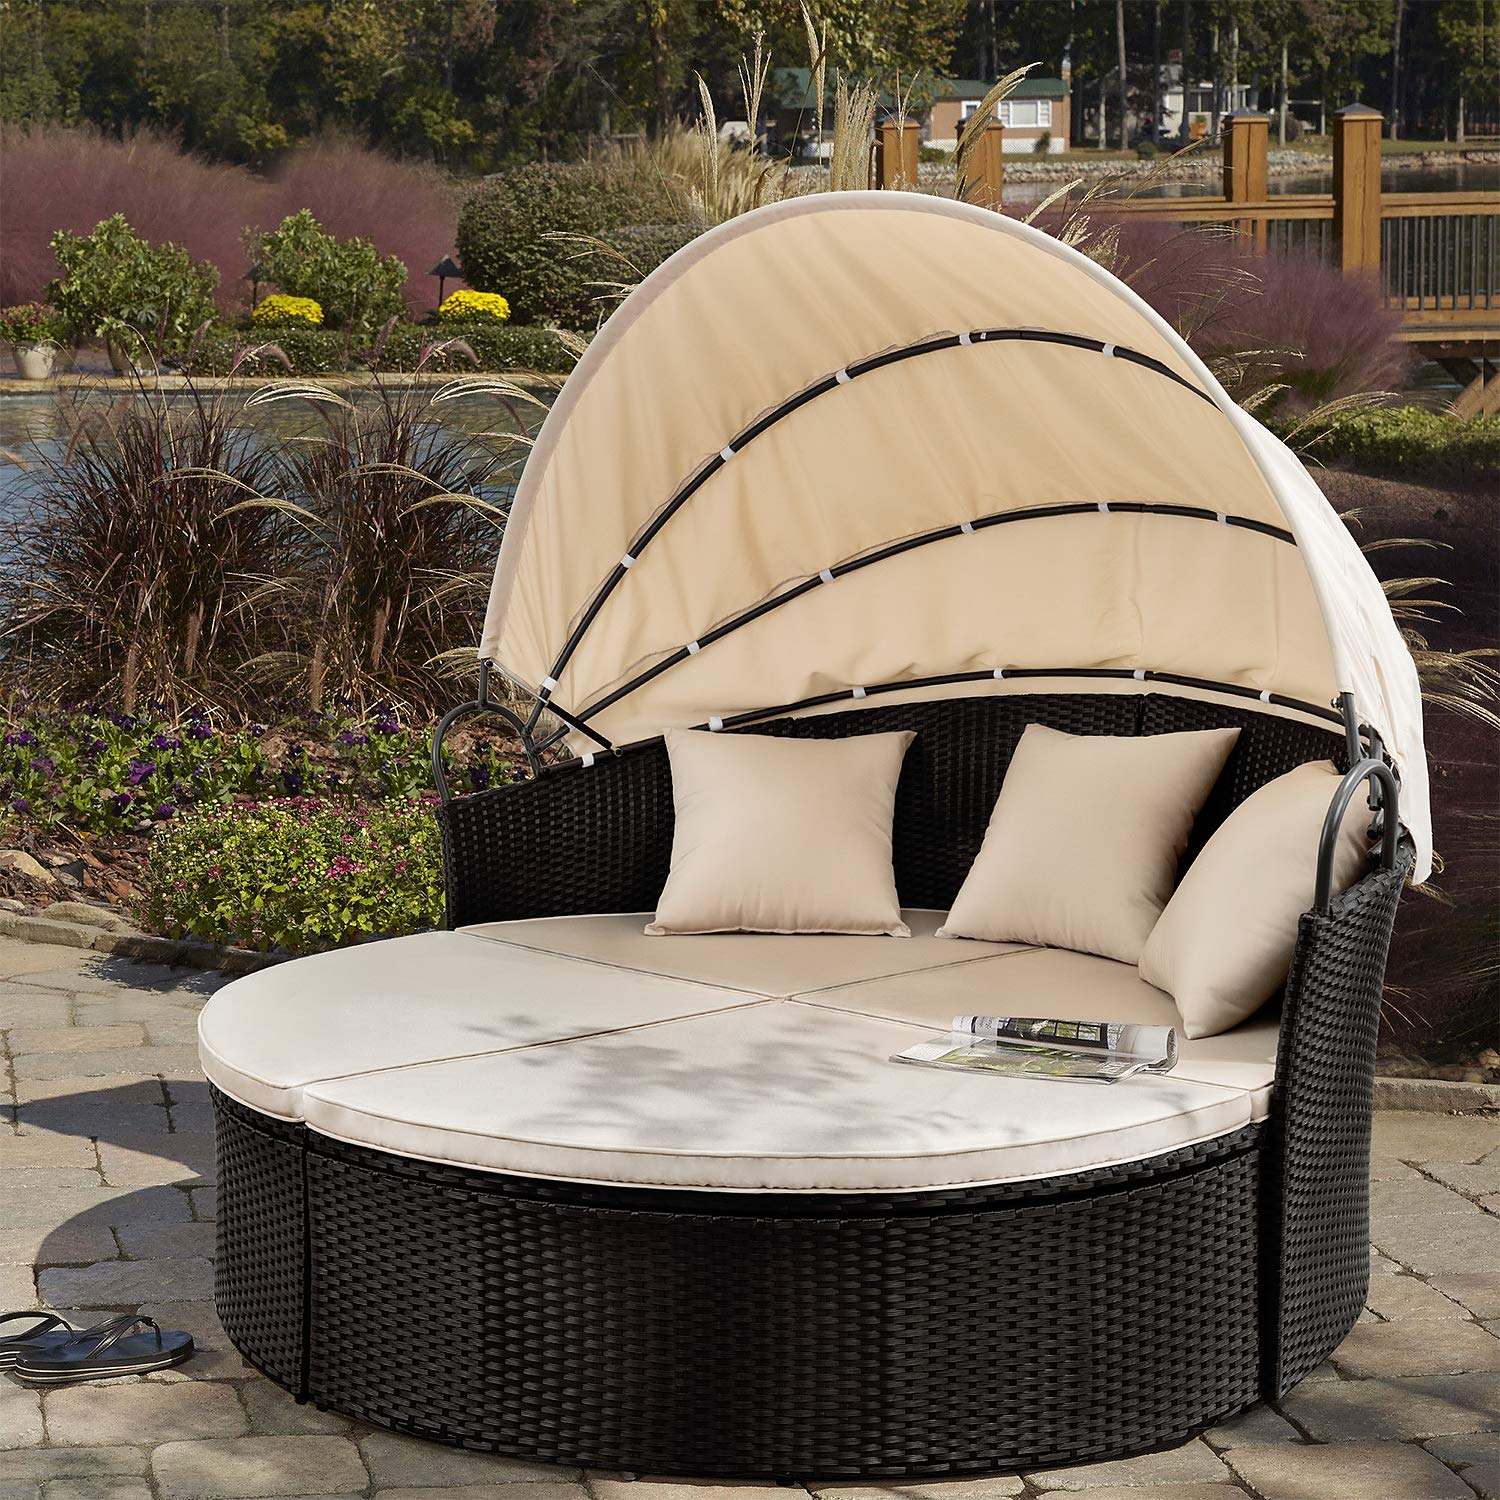 Devoko Outdoor Patio Round Daybed with Retractable Canopy Wicker Rattan Furniture Sectional Sets All-Weather Separated Seating Backyard Porch Pool Daybed with Washable Cushions (Beige) by Devoko